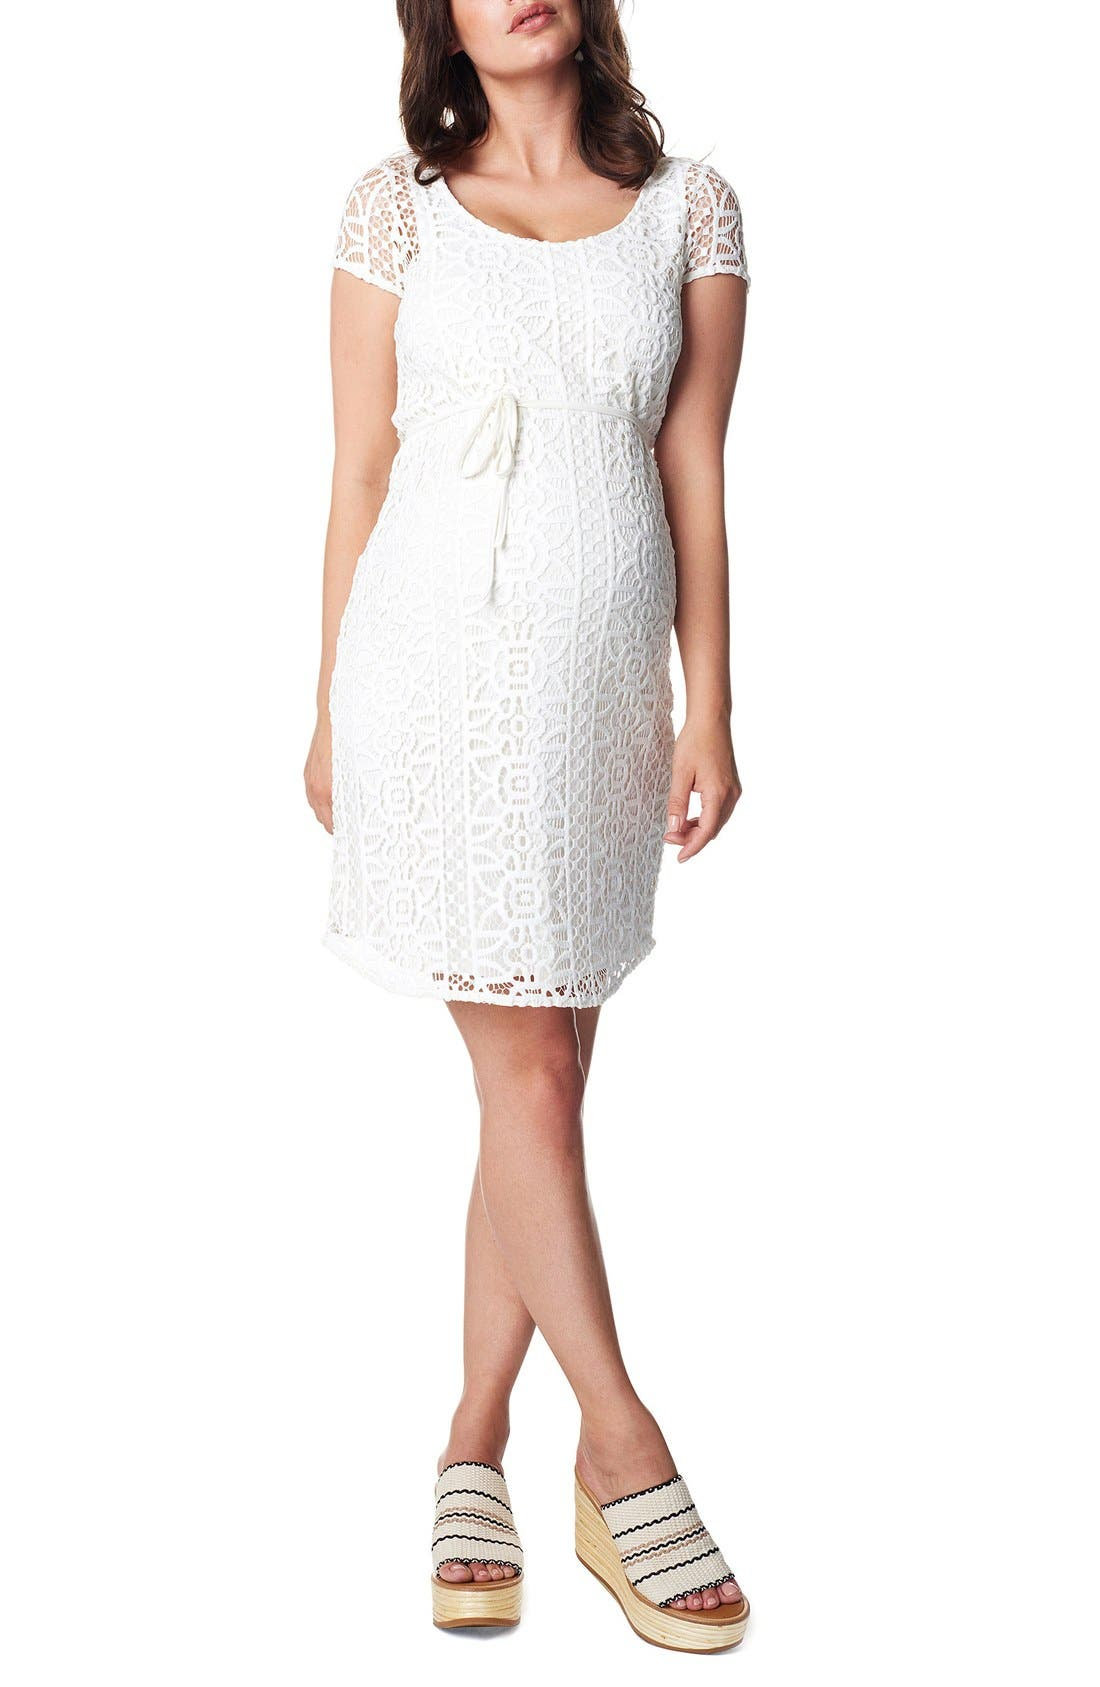 Elise Woven Lace Maternity Dress,                             Main thumbnail 1, color,                             Off White